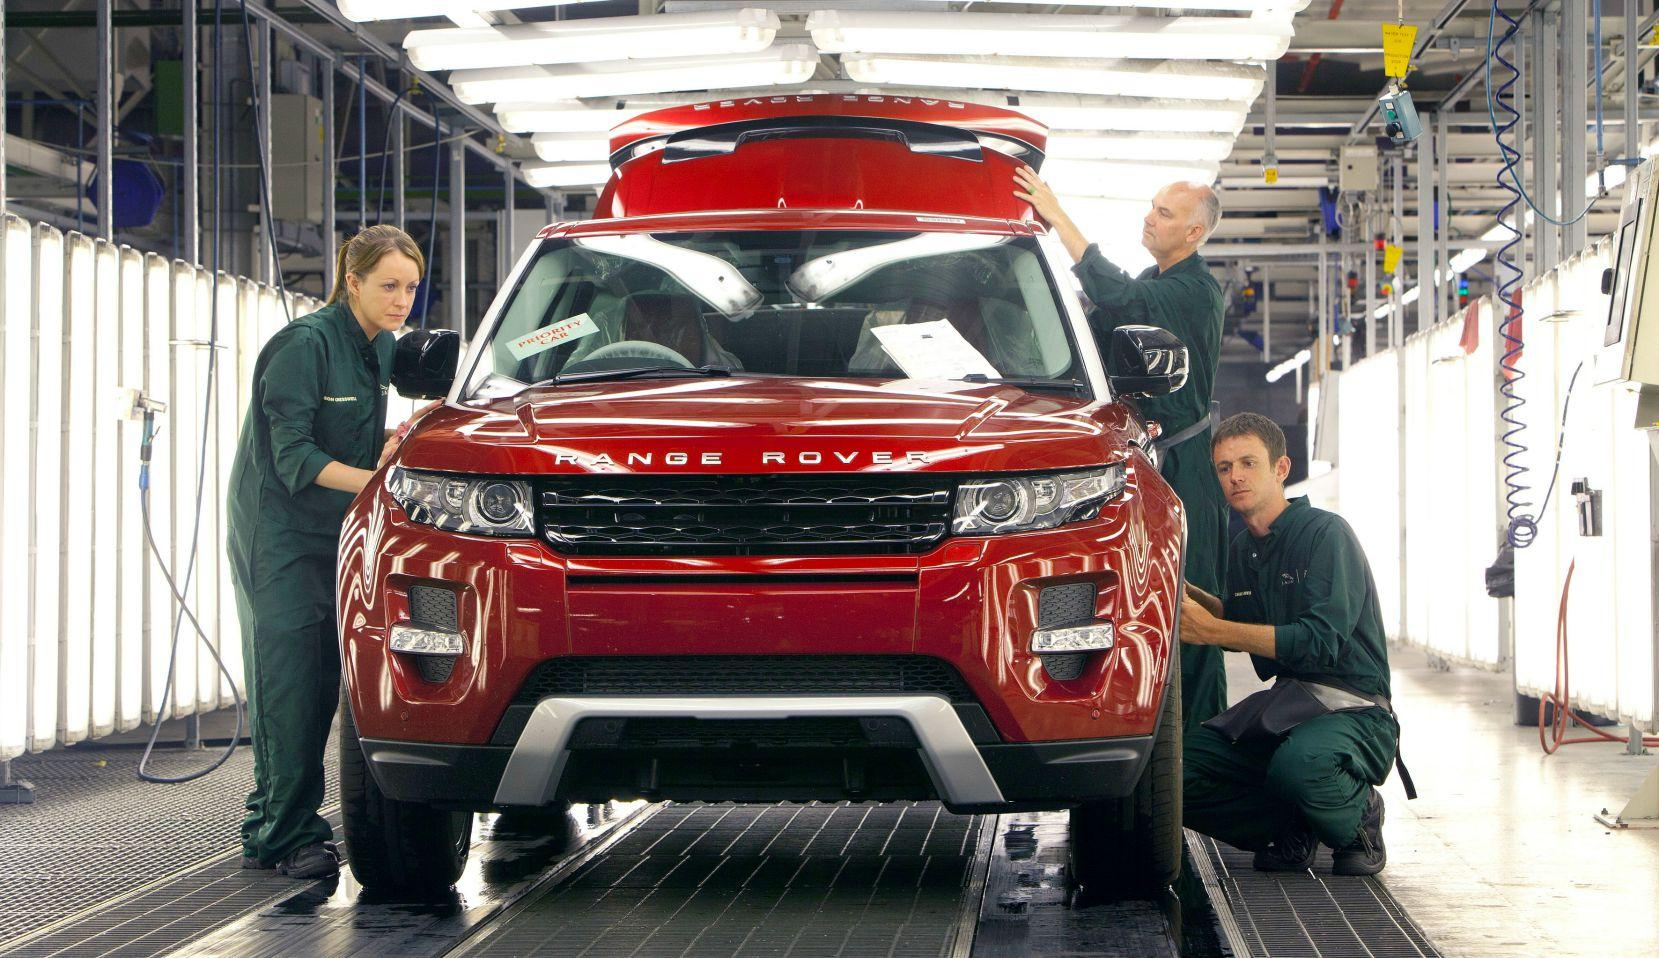 British car production falls at quickest pace since recession